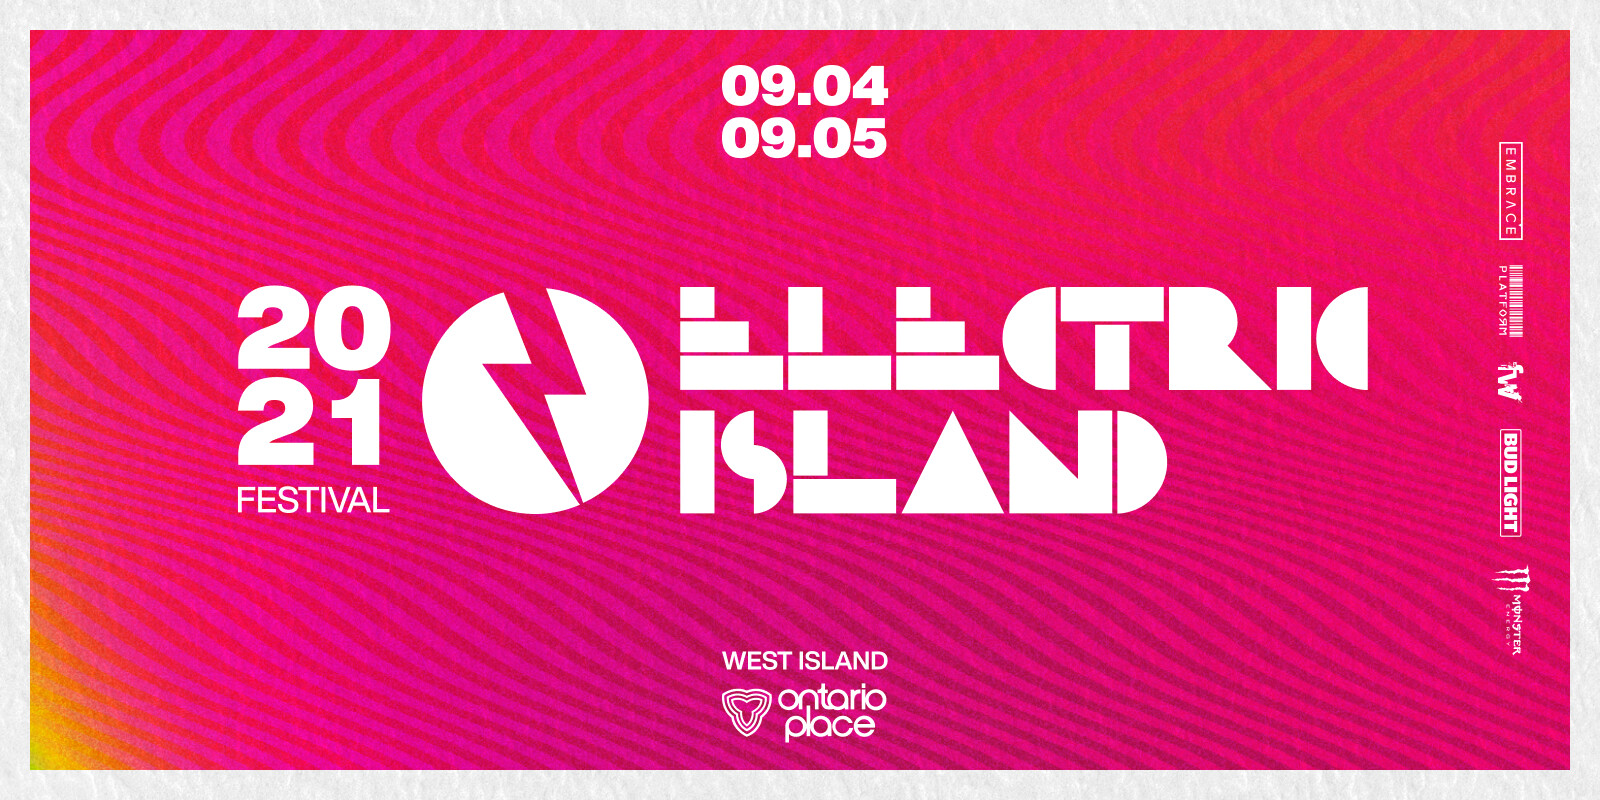 Hero for Canada Website Events - Electric Island Flyer